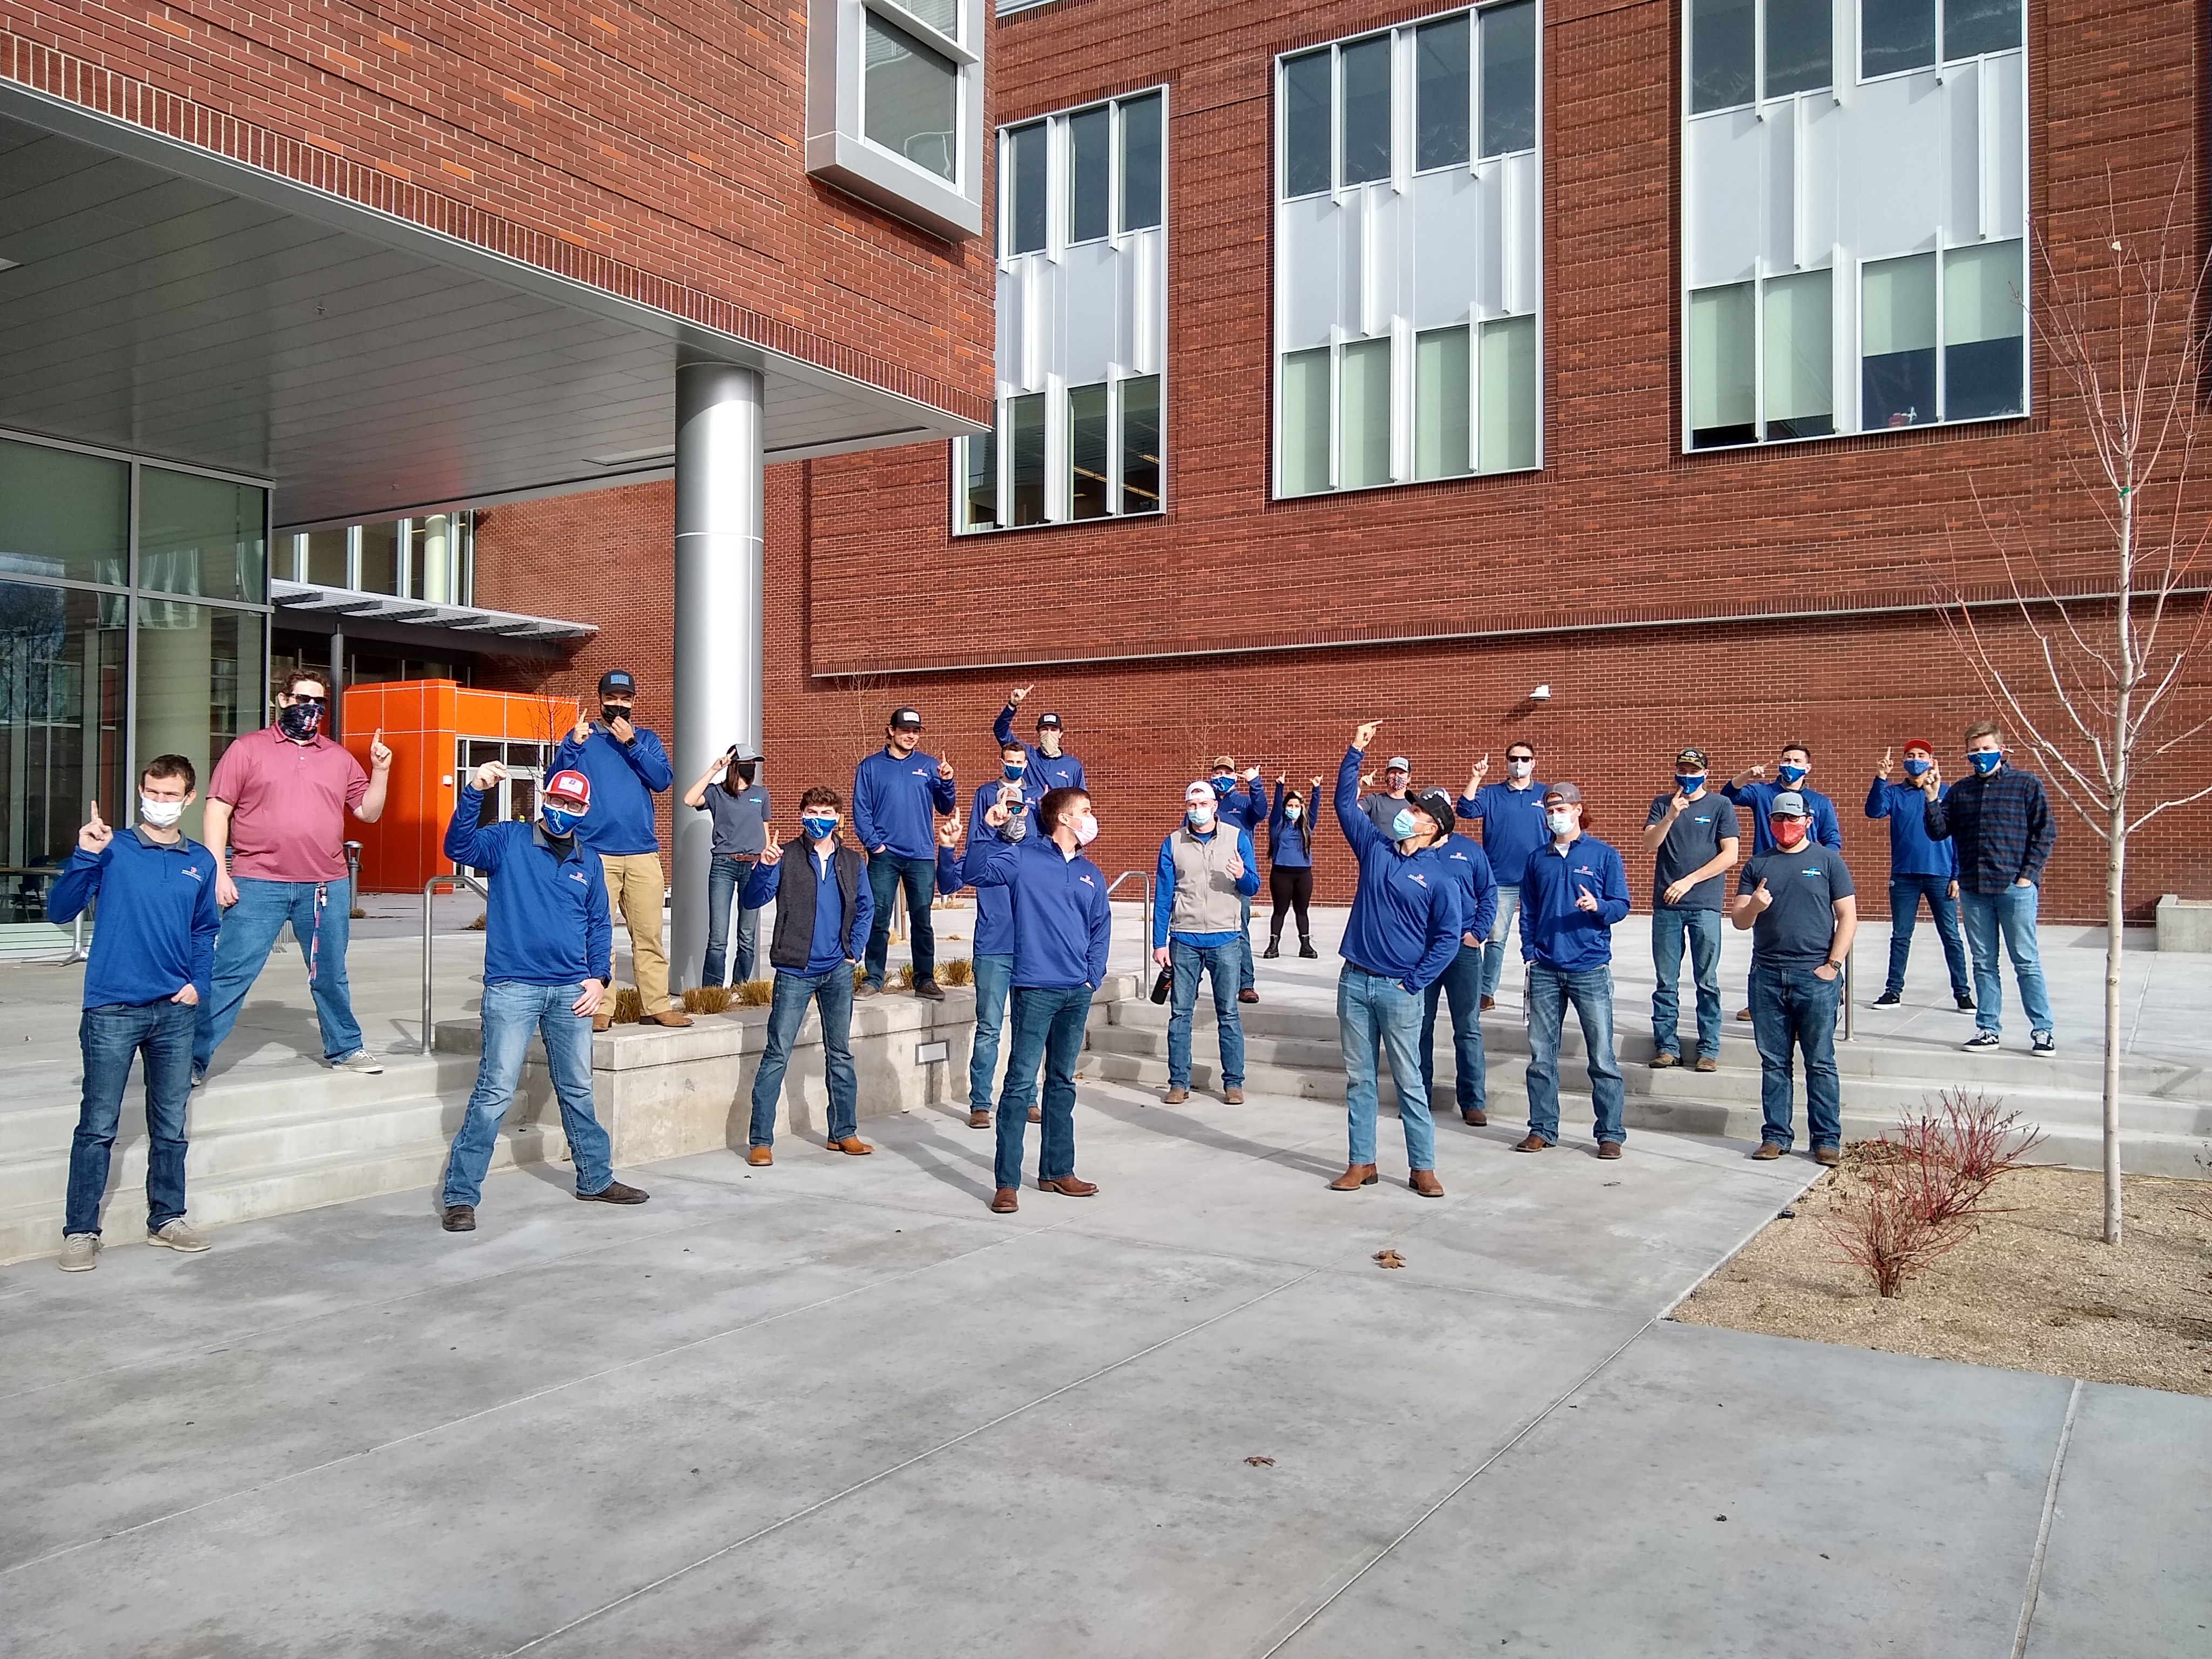 Construction Management students stand outside building, physically distanced and wearing masks